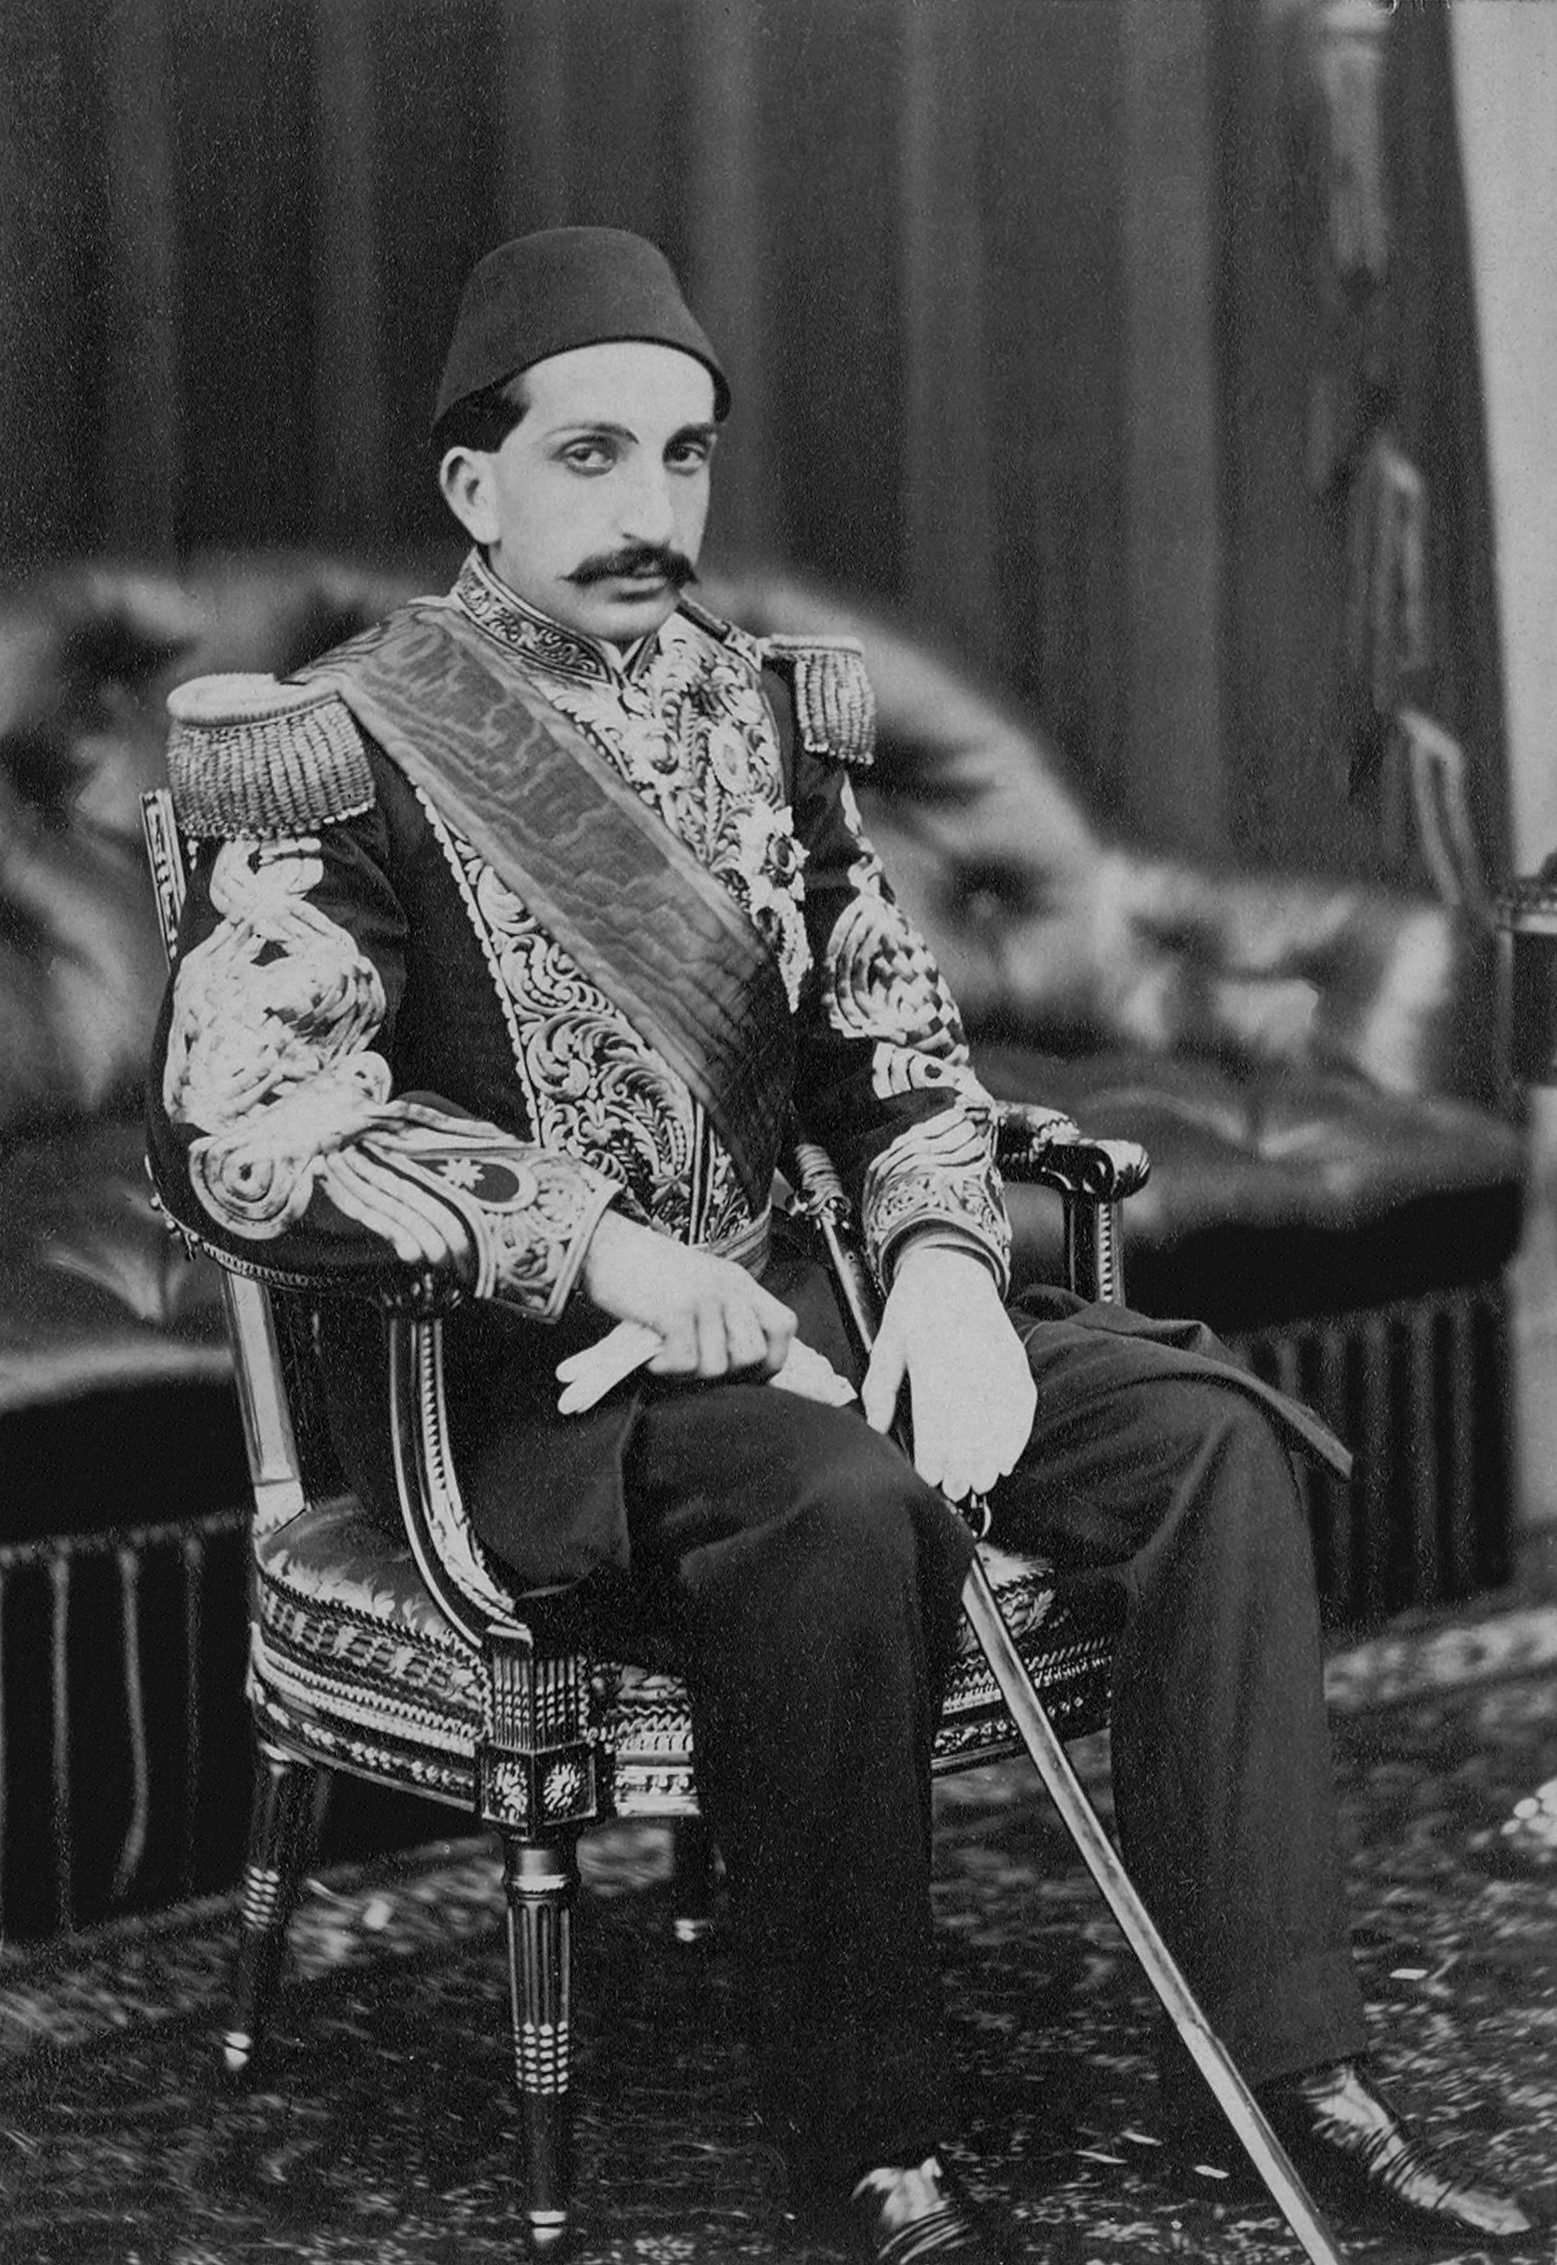 An official portrait of Prince Abdülhamid at Balmoral Castle, Scotland, taken in 1867. (Archive Photo)